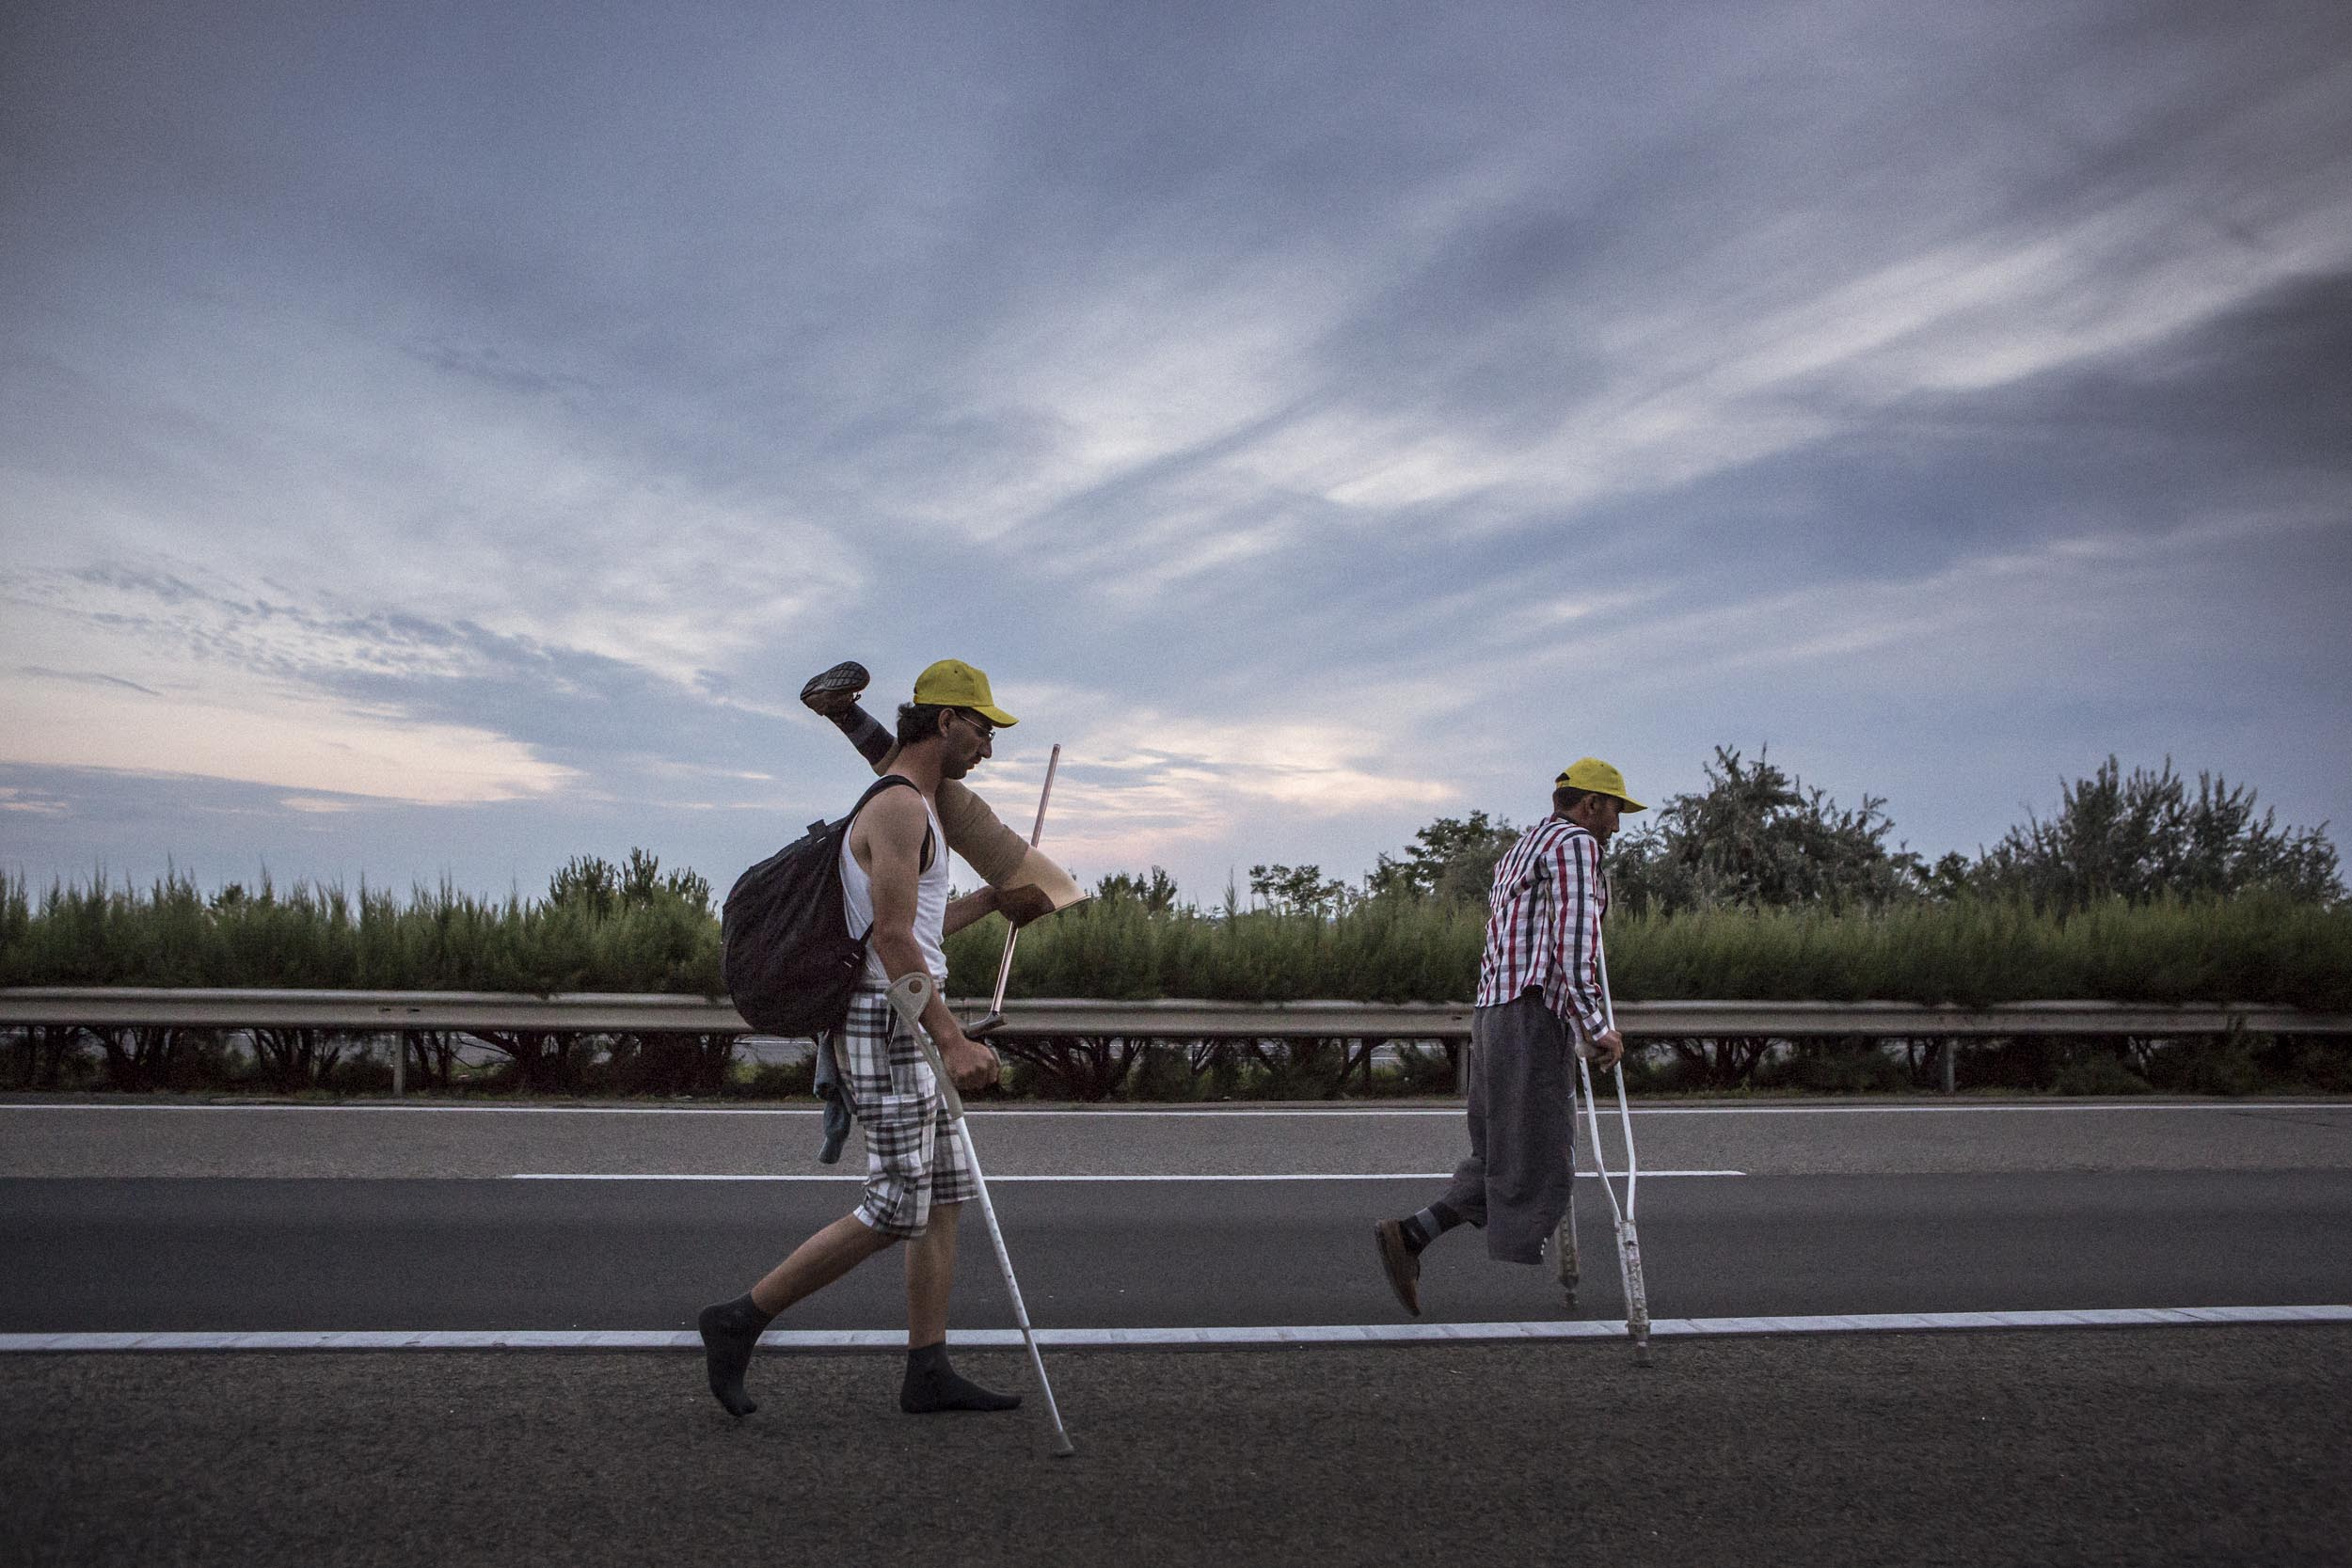 Outside Budapest Hungary. Syrian refugees travel along the M! highway bound for the Hungary/Austria border.